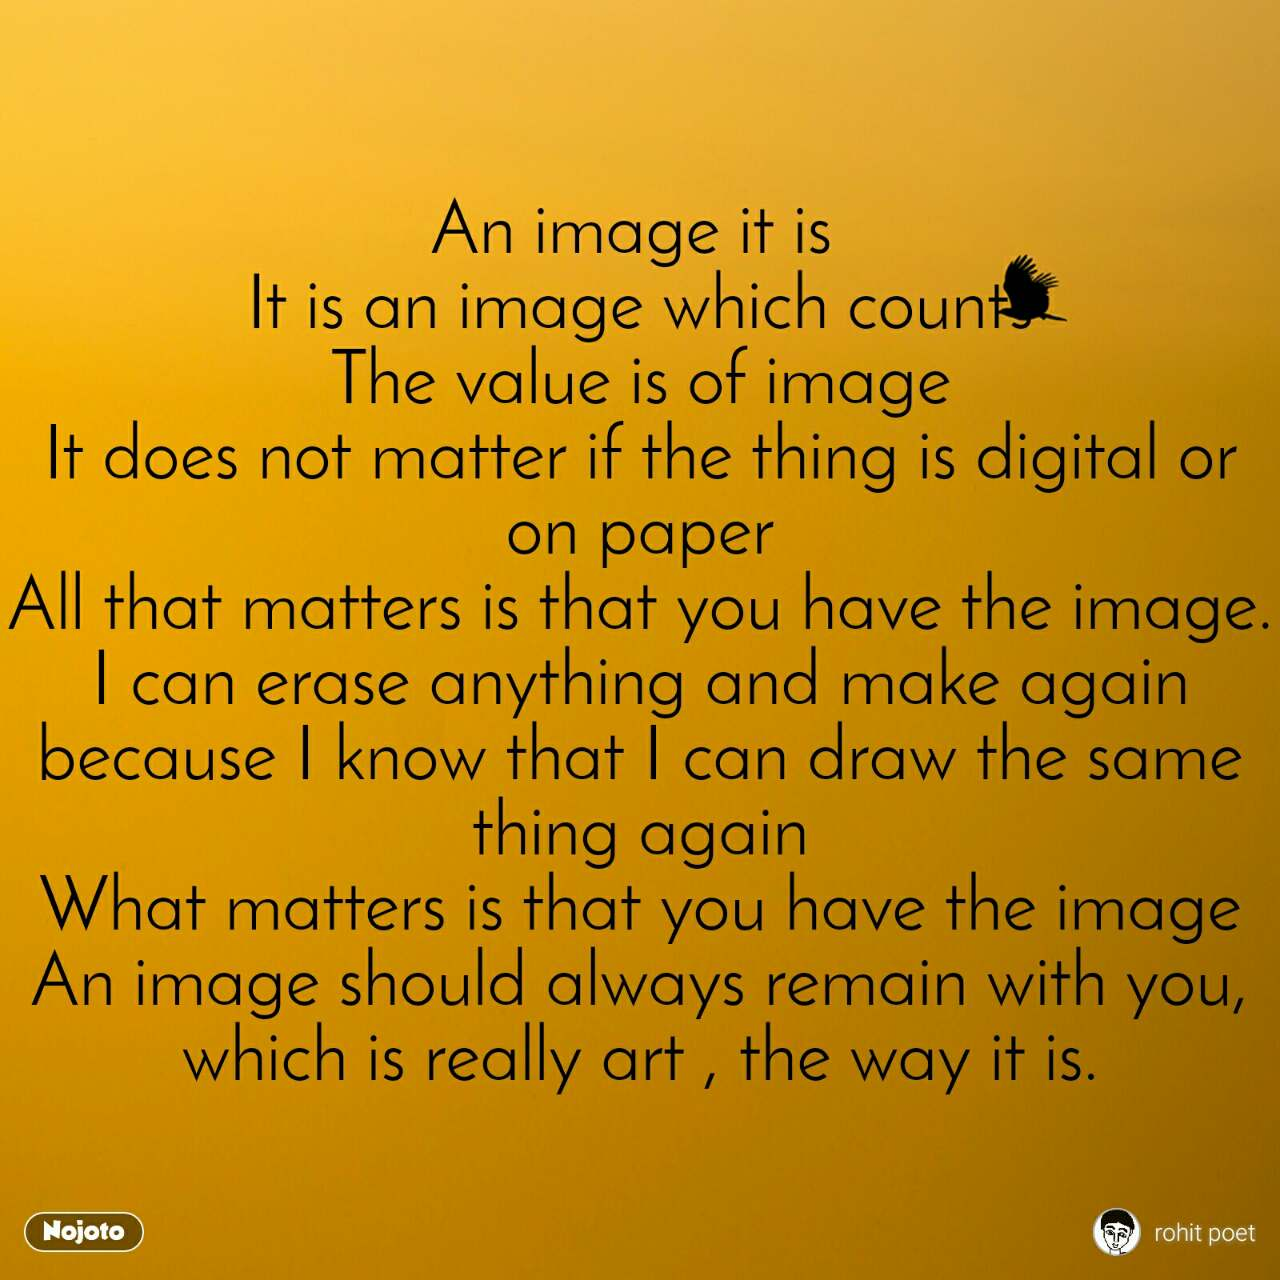 An image it is  It is an image which counts The value is of image It does not matter if the thing is digital or on paper All that matters is that you have the image. I can erase anything and make again because I know that I can draw the same thing again What matters is that you have the image An image should always remain with you, which is really art , the way it is.